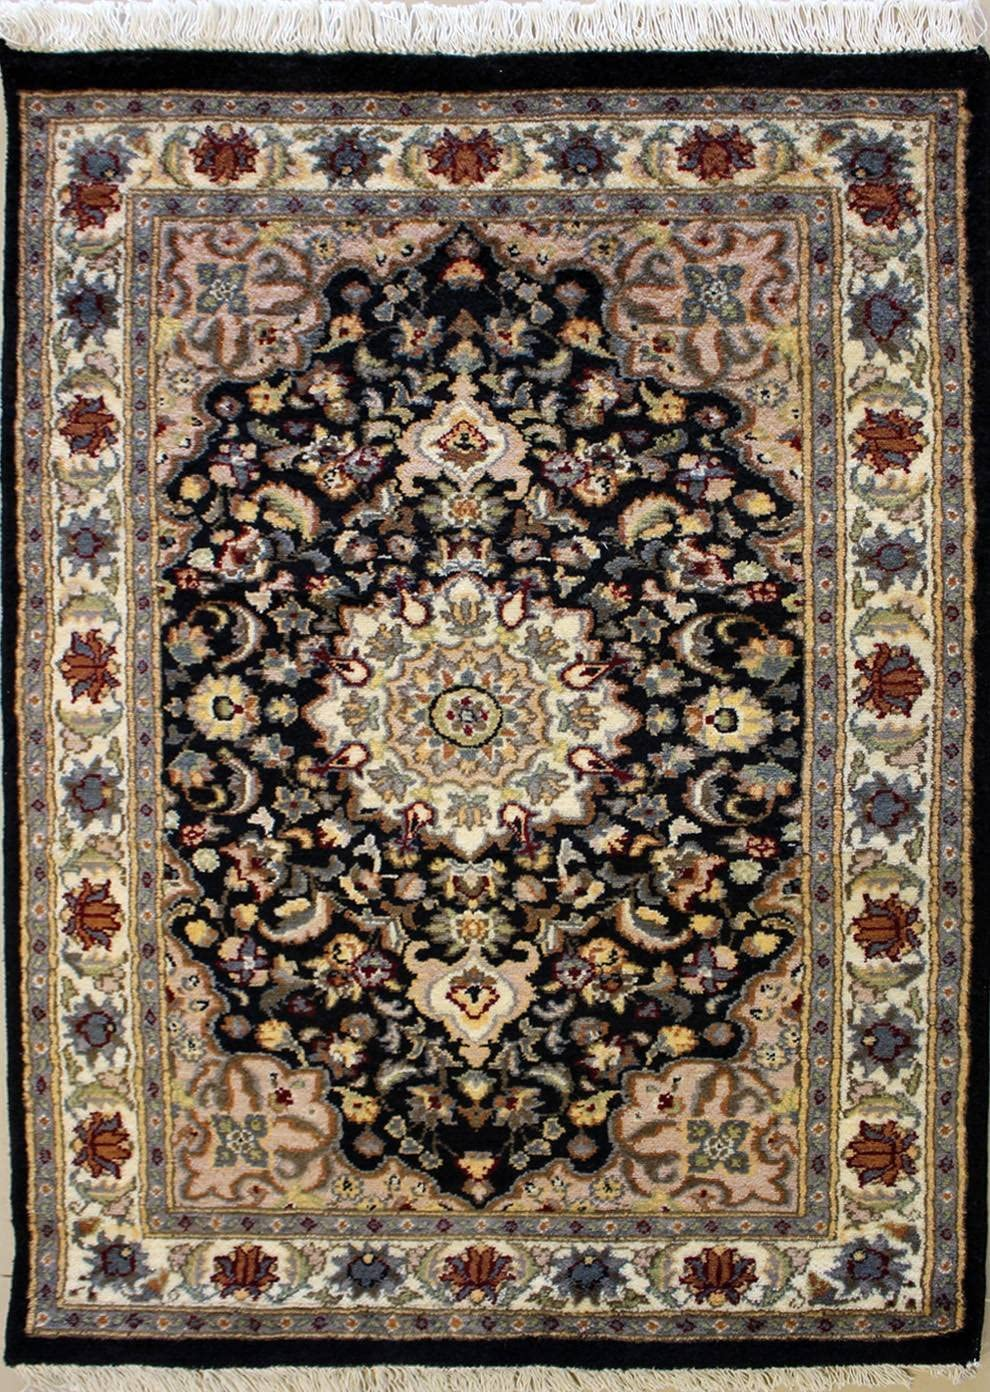 RugsTC 2'5 x 3'11 Pak Persian Area Rug with Wool Pile - Floral Design   100% Original Hand-Knotted in Black,White,Grey Colors   a 2.5x4 Rectangular Double Knot Rug